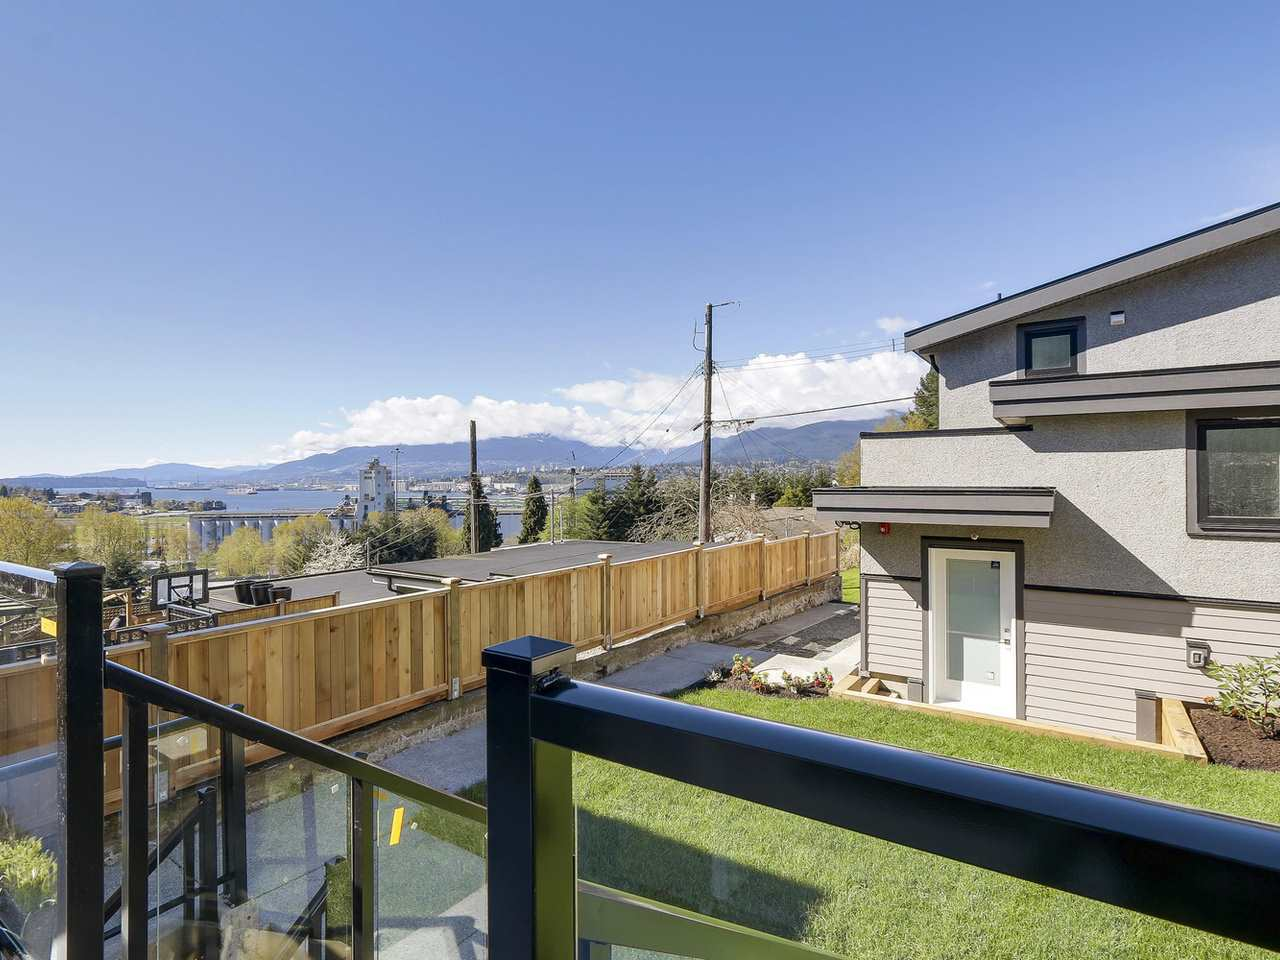 Photo 17: 3539 ETON Street in Vancouver: Hastings East House for sale (Vancouver East)  : MLS® # R2159493